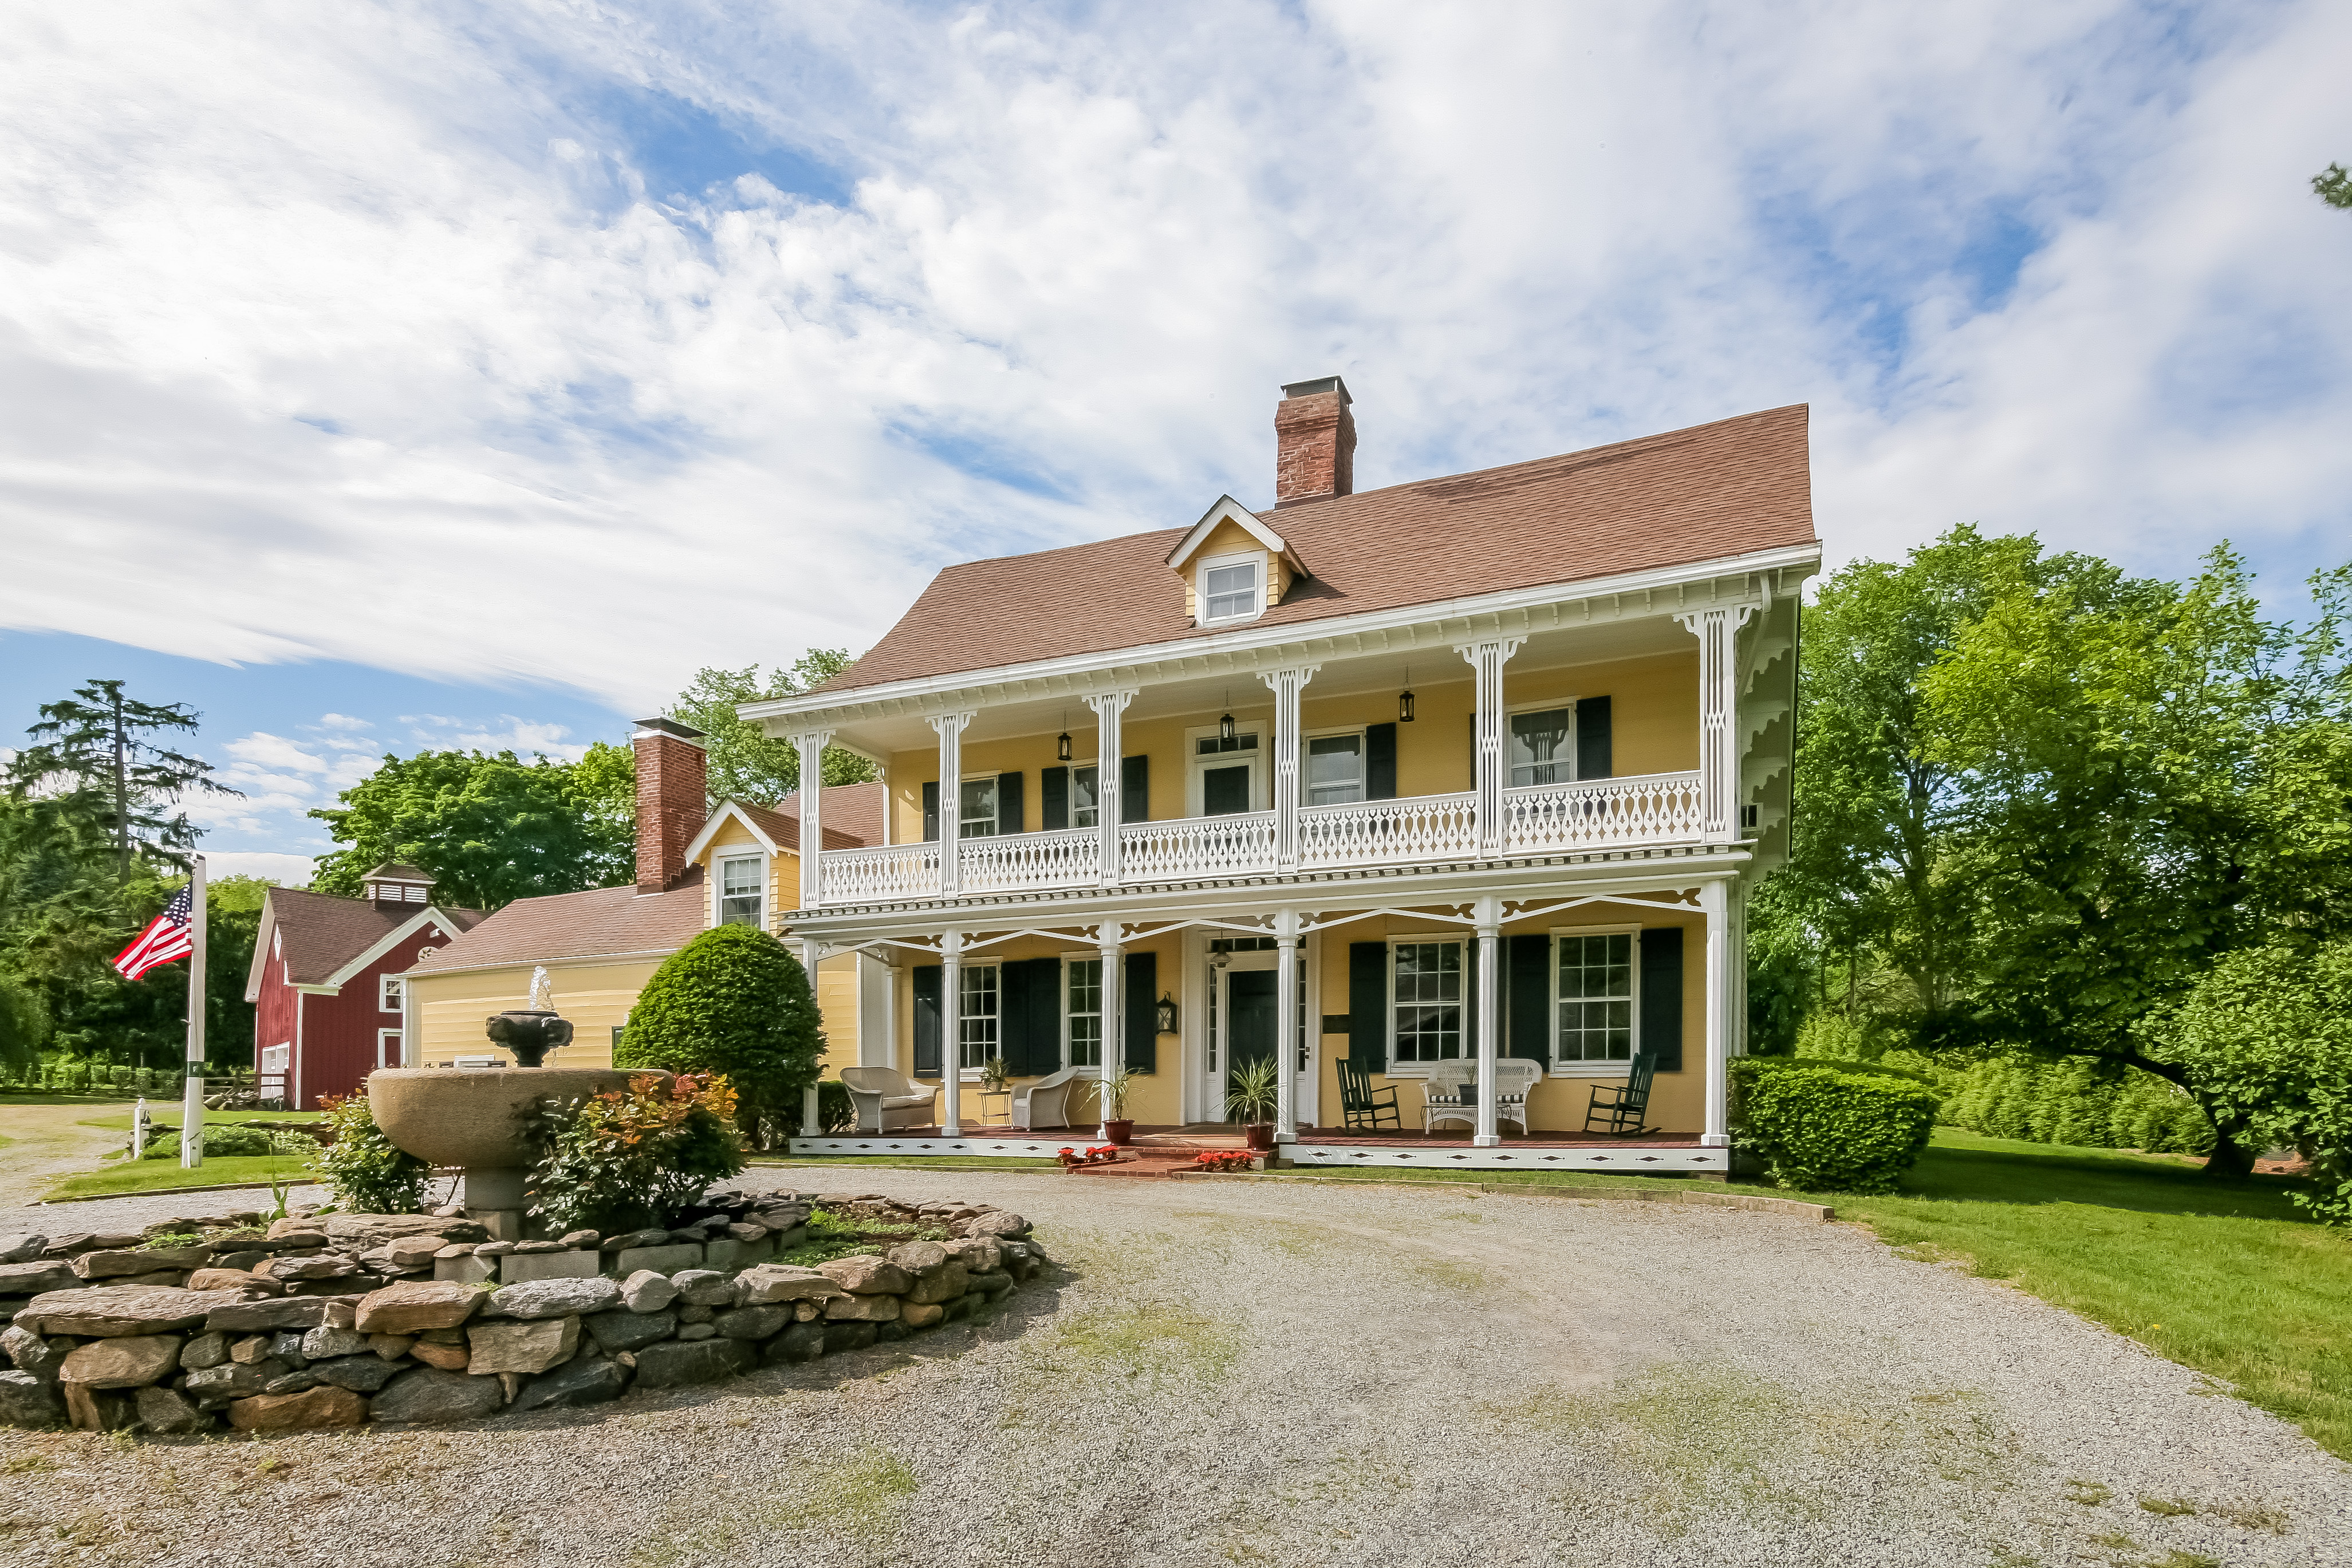 Single Family Home for Sale at The Griffen Homestead 1152 Old White Plains Road Mamaroneck, New York 10543 United States